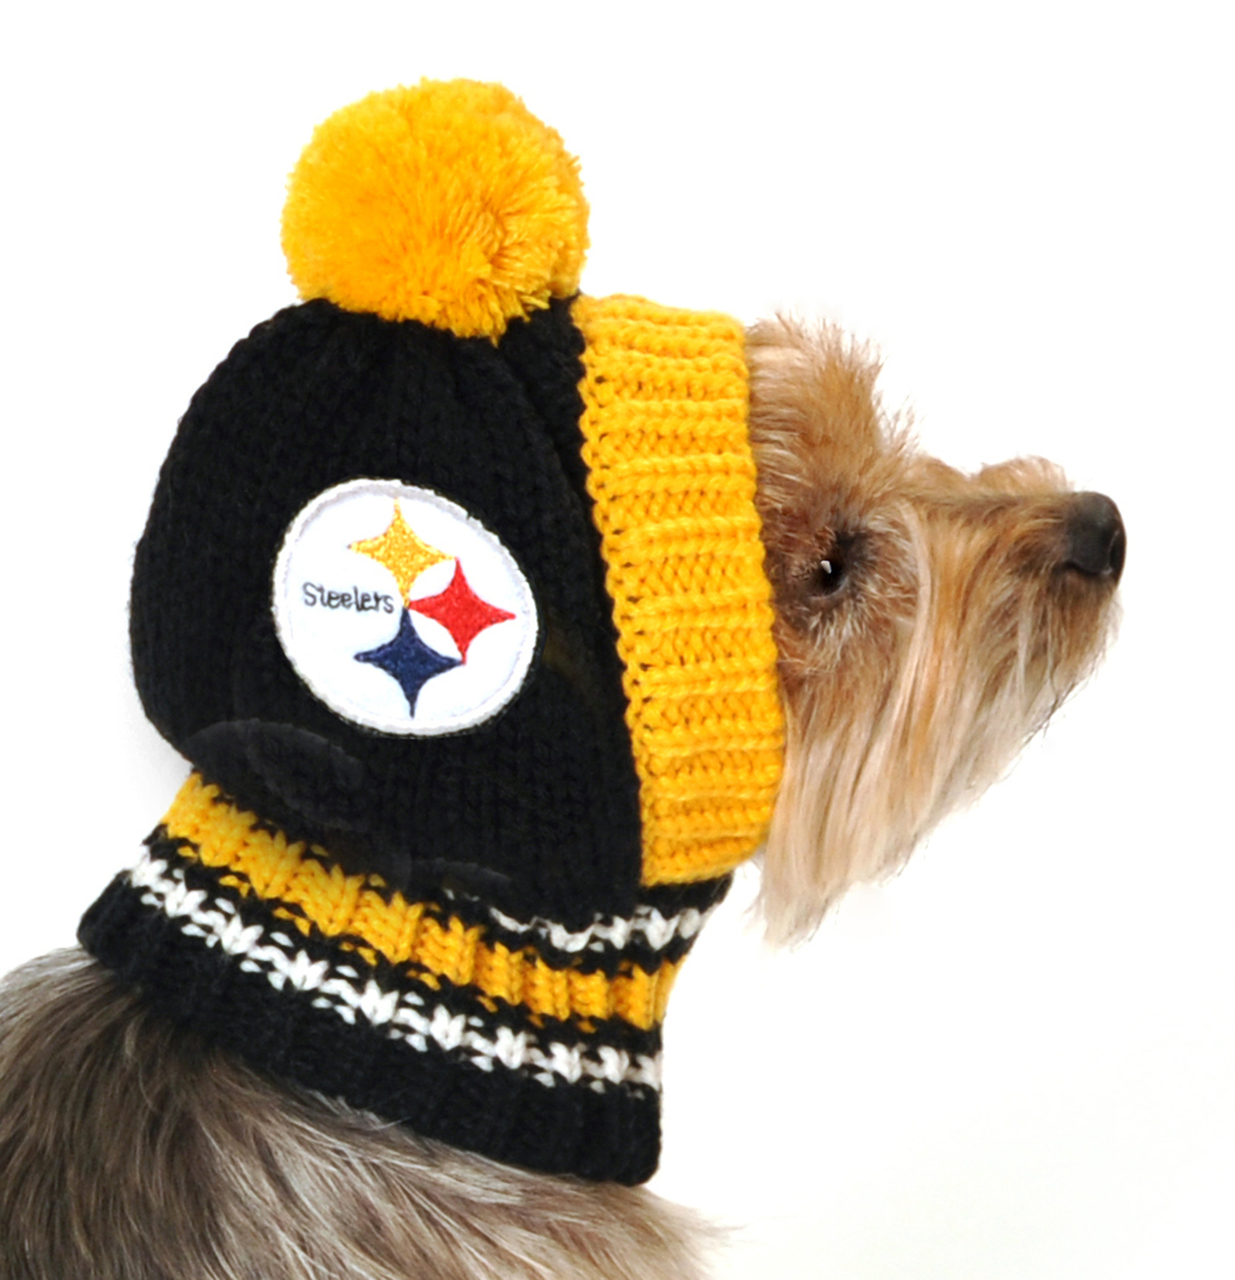 Hot Dog Pittsburgh Steelers NFL Knit Hat For Dogs